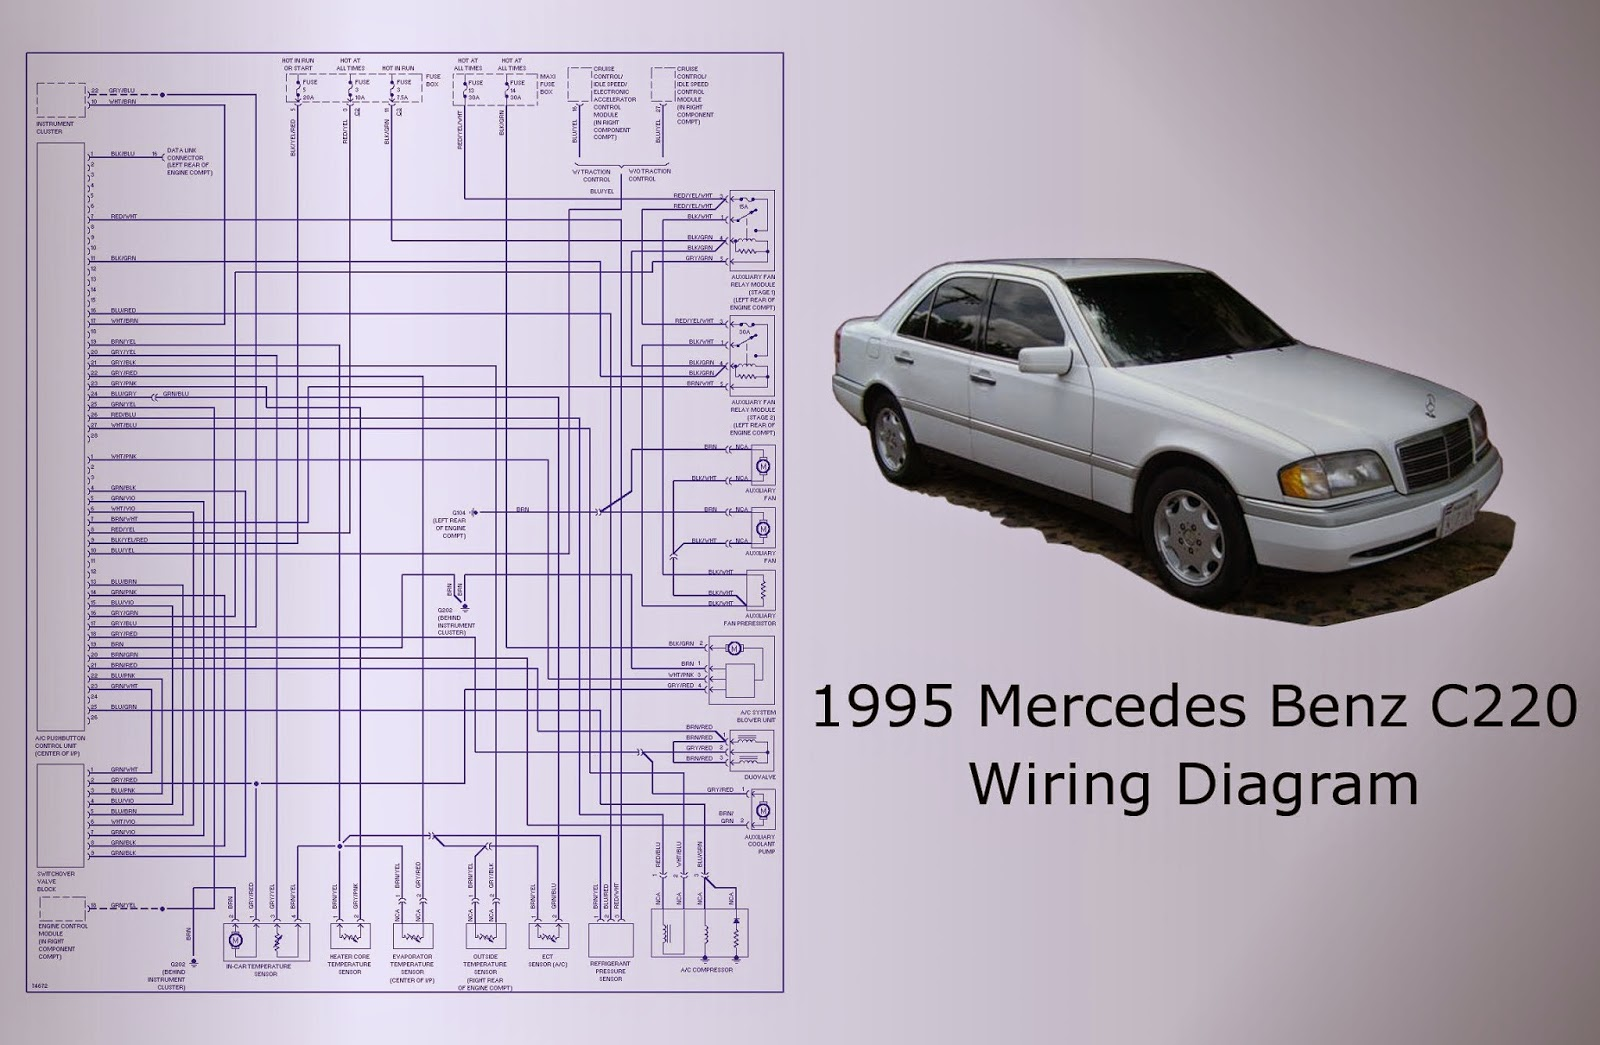 1995 mercedes benz c220 wiring diagram auto wiring diagrams mercedes benz wiring diagram mercedes benz wiring [ 1600 x 1045 Pixel ]